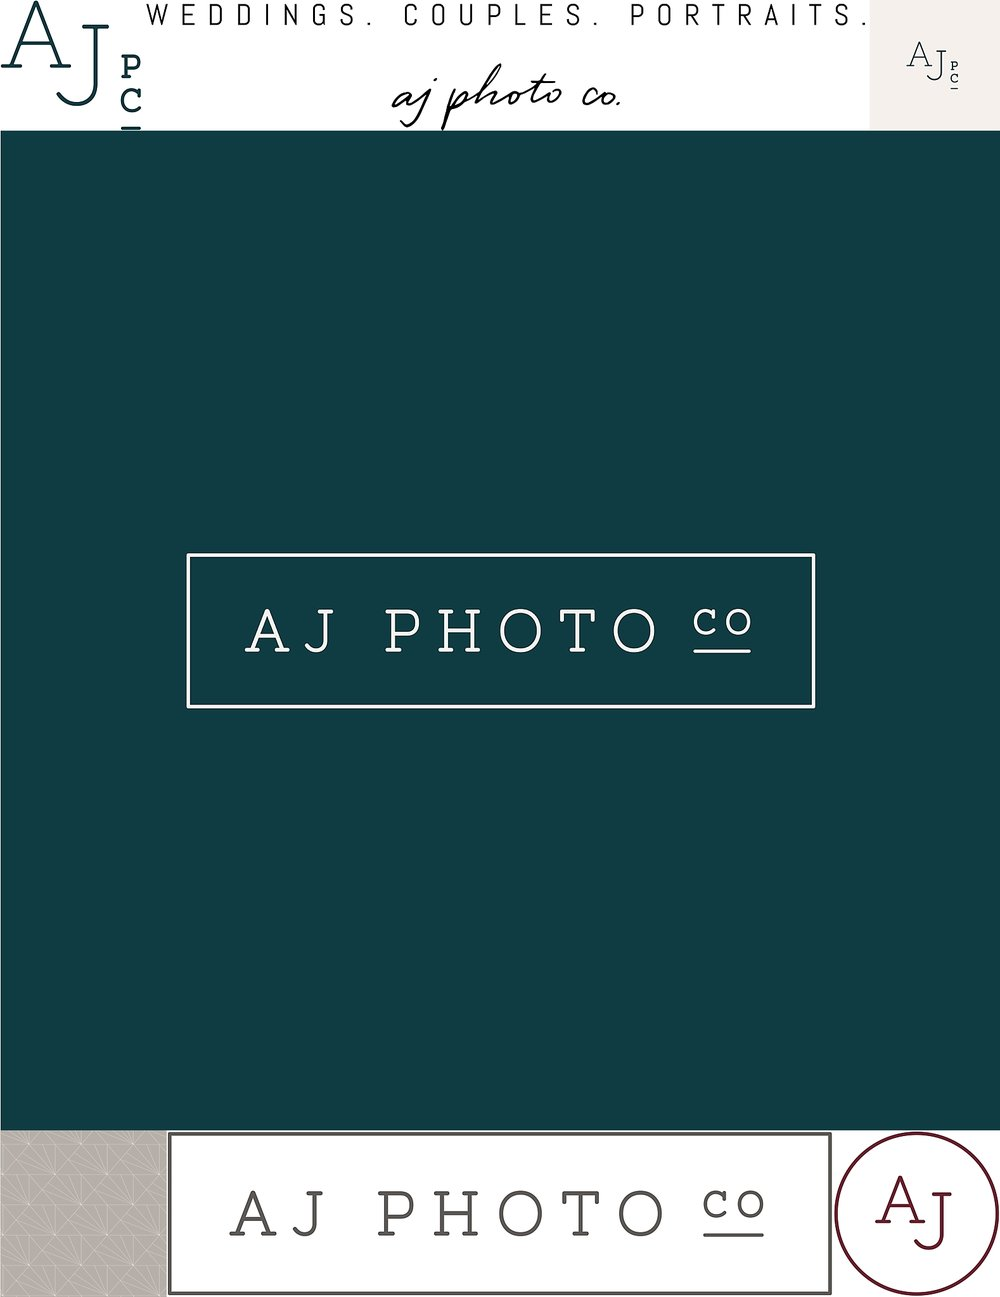 Logos and branding for AJ Photo Company, photographer in Sun Prairie, WI